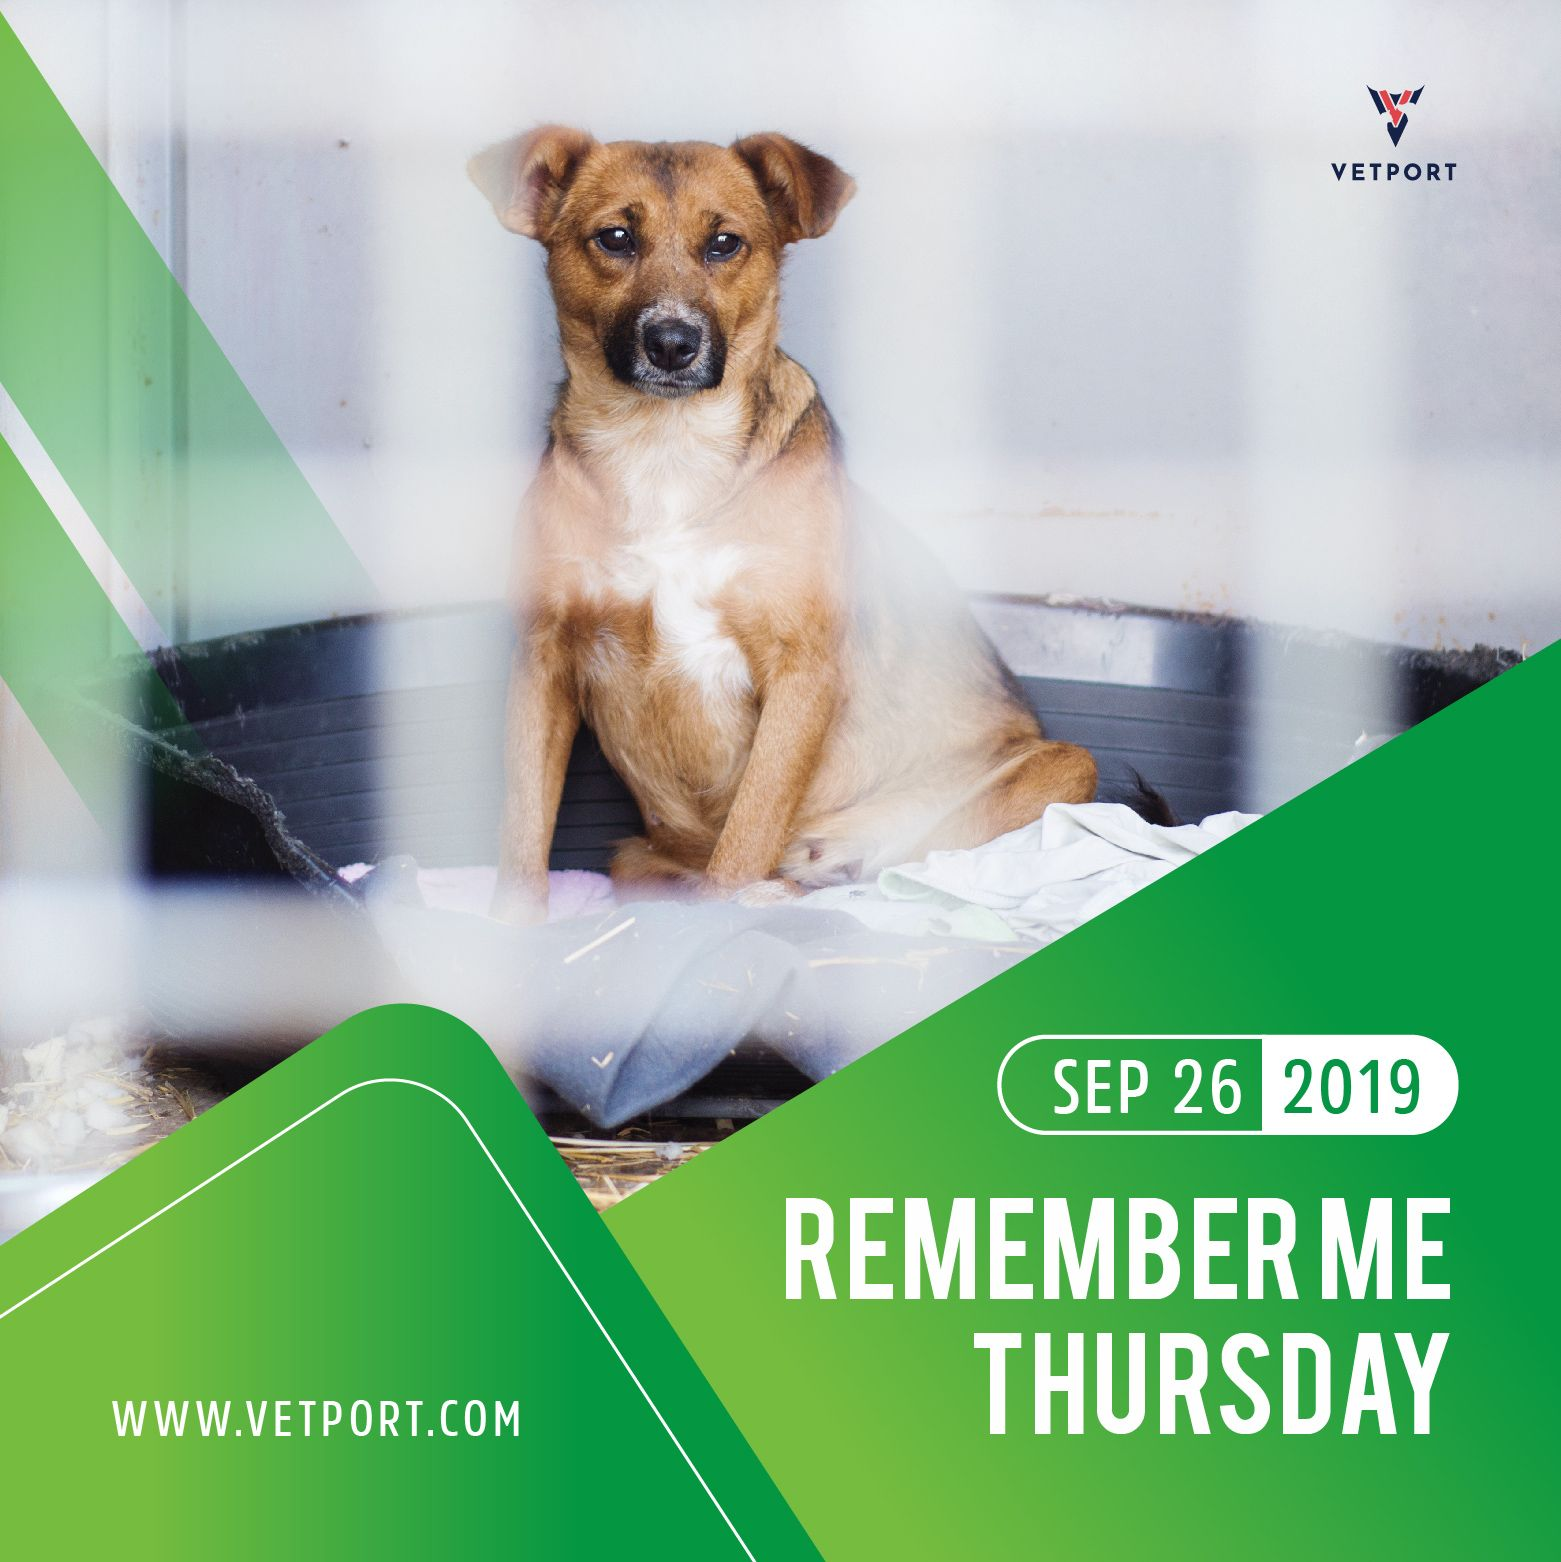 Remember Me Thursday Animal Lover Veterinary Pet Care